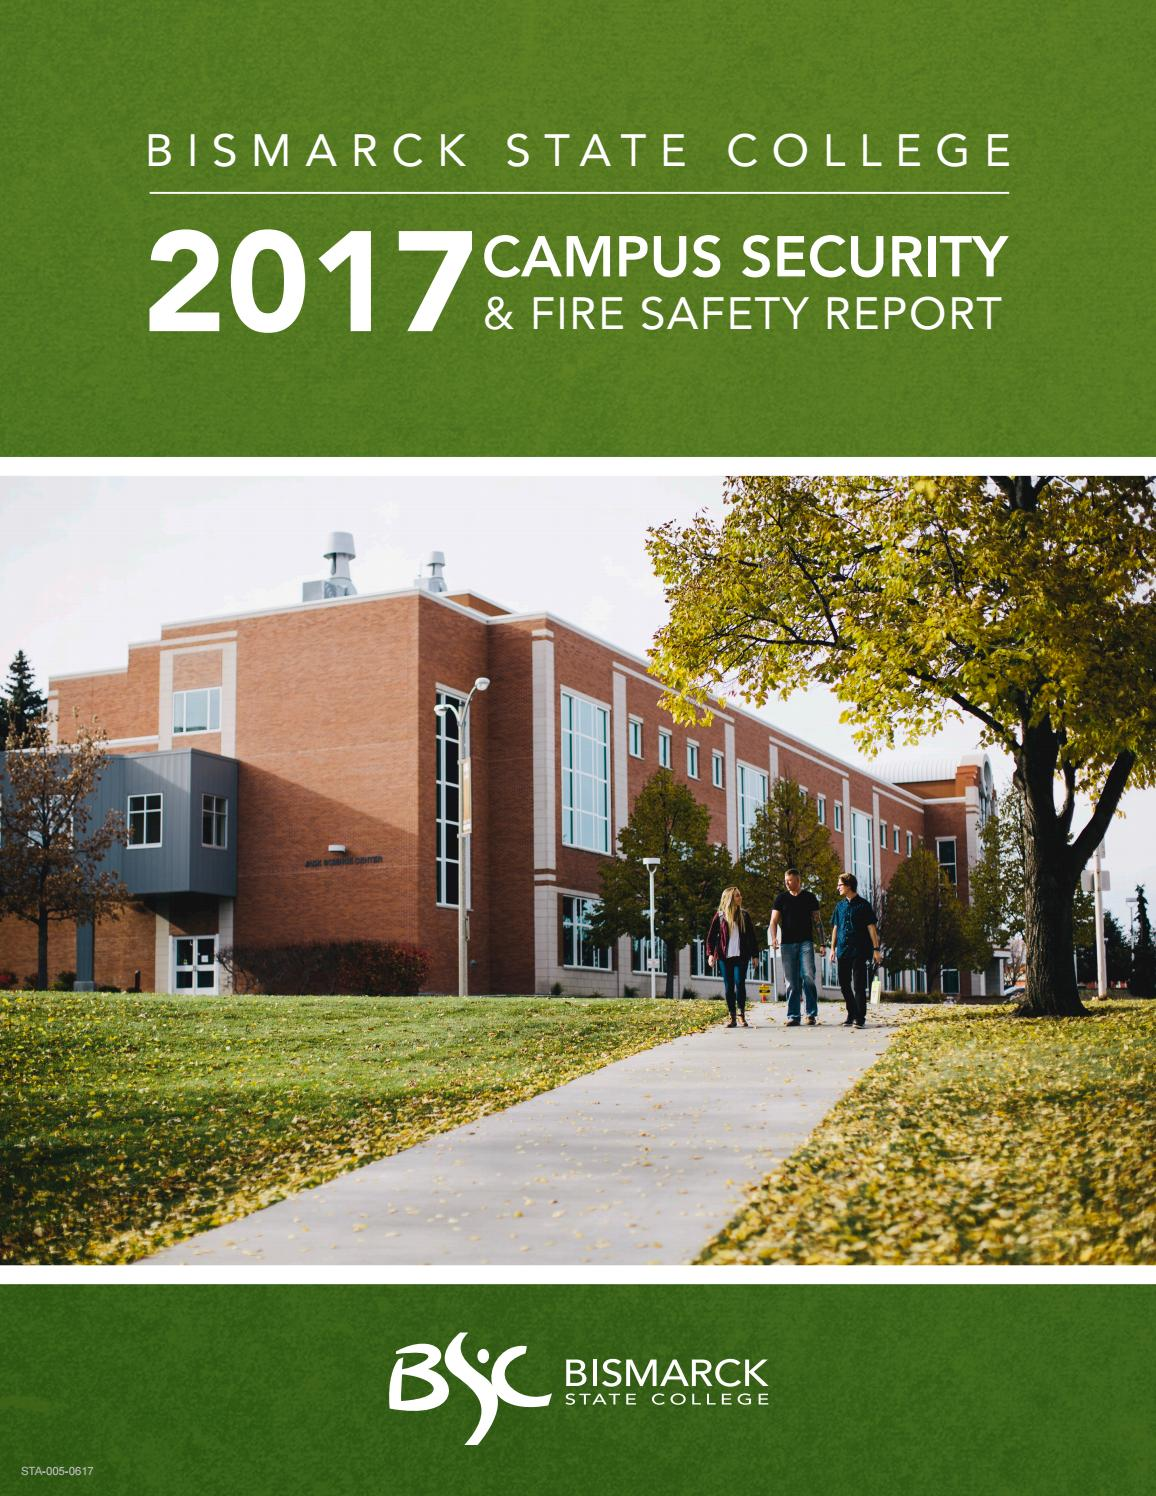 2017 Campus Security And Fire Safety Report By Bismarck